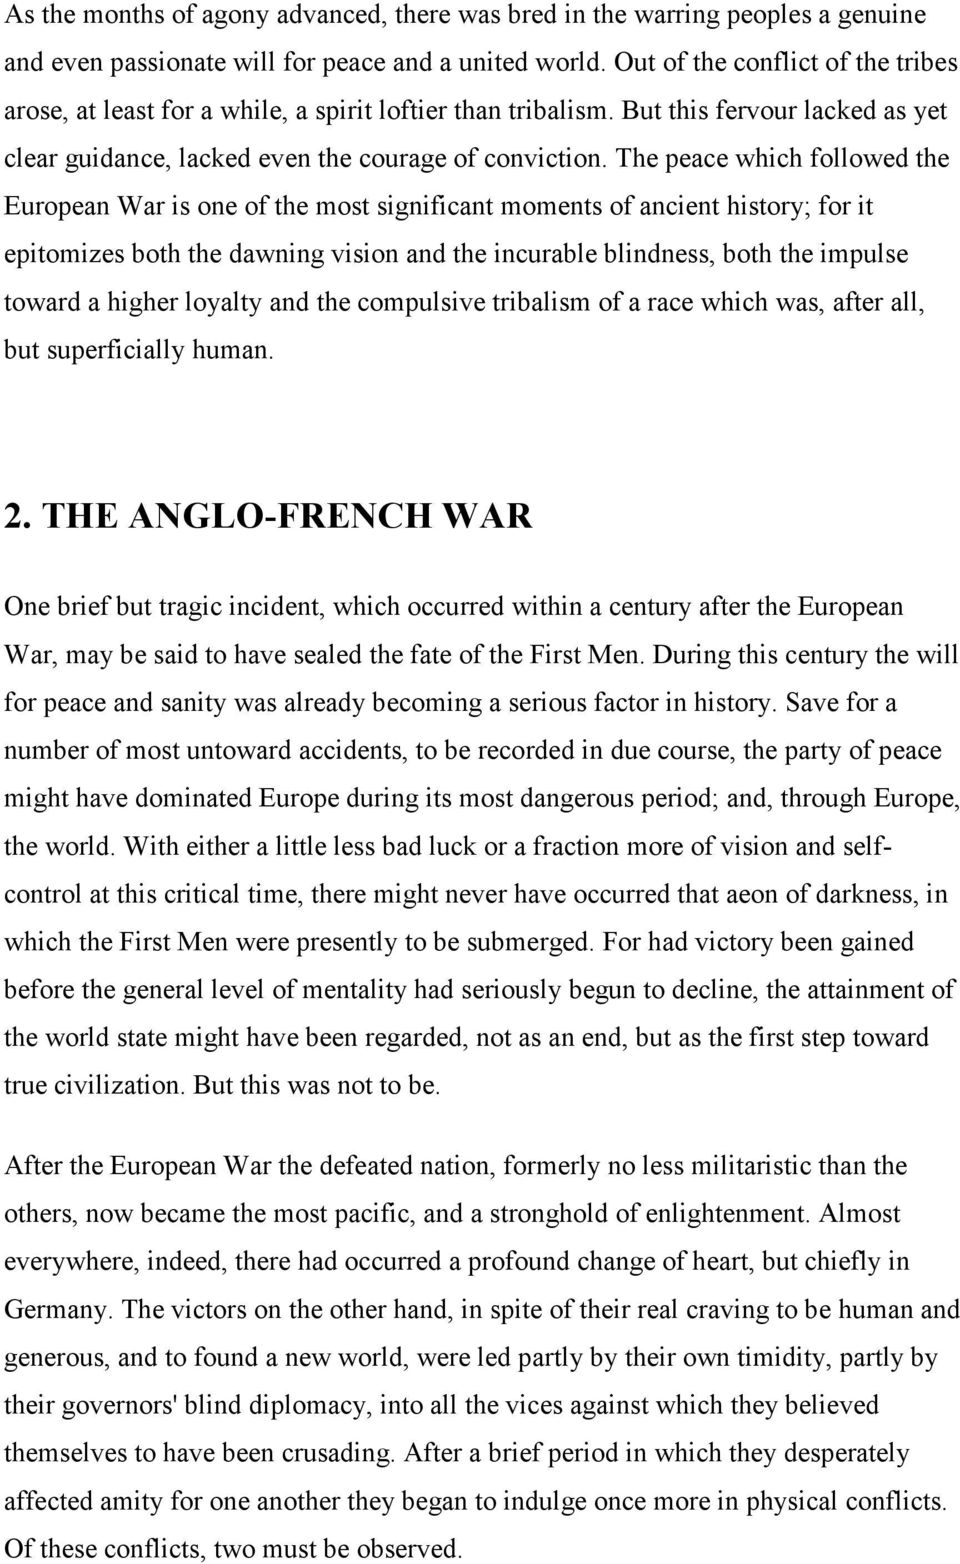 The peace which followed the European War is one of the most significant moments of ancient history; for it epitomizes both the dawning vision and the incurable blindness, both the impulse toward a